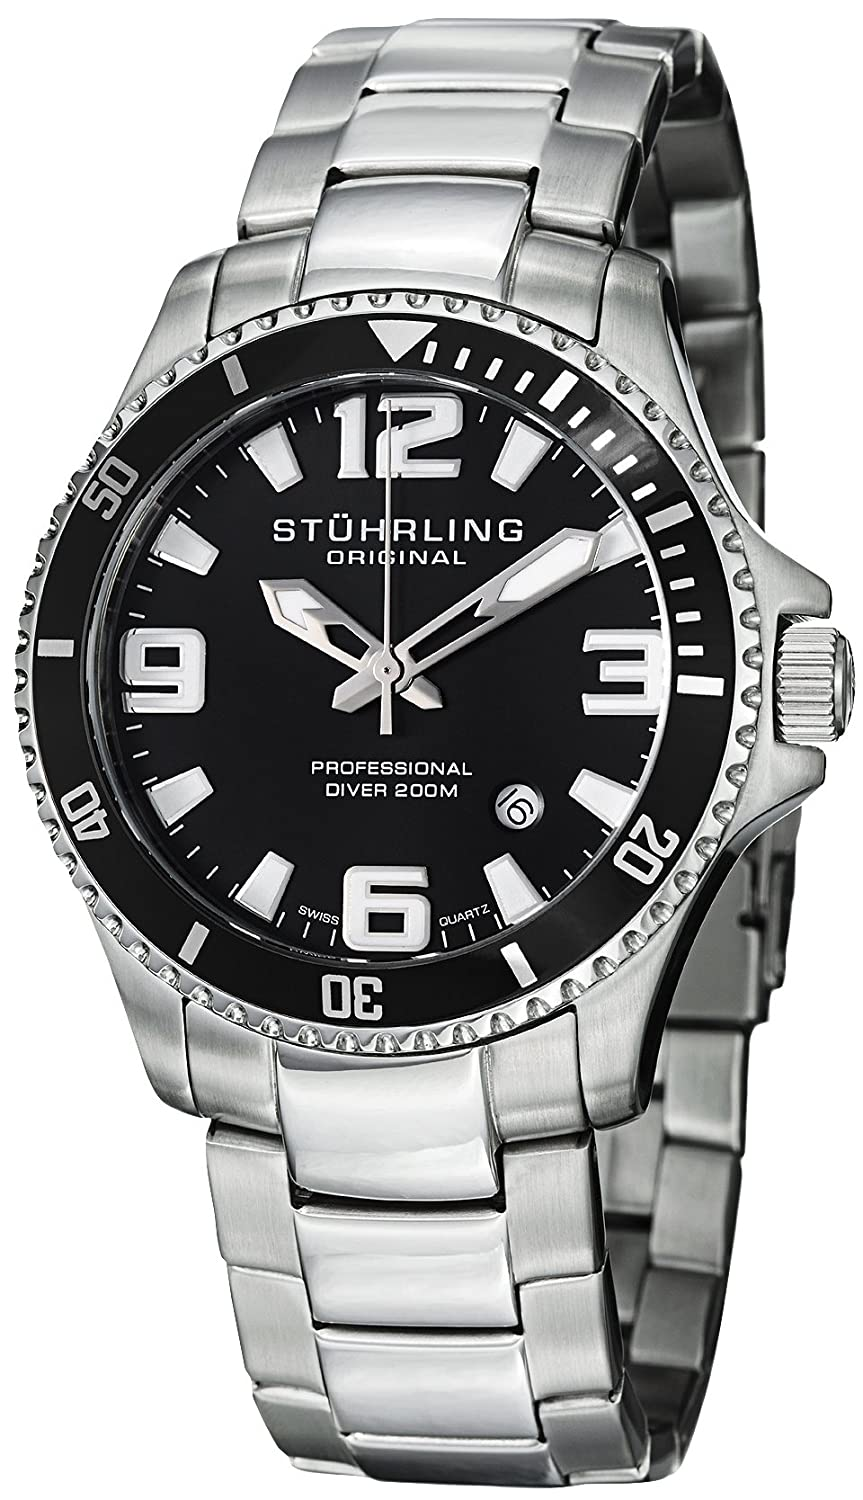 Stuhrling Original Men&#8217;s 395.33B11 Aquadiver Regatta Champion Professional Diver Swiss Quartz Date Black Bezel Watch $49.99